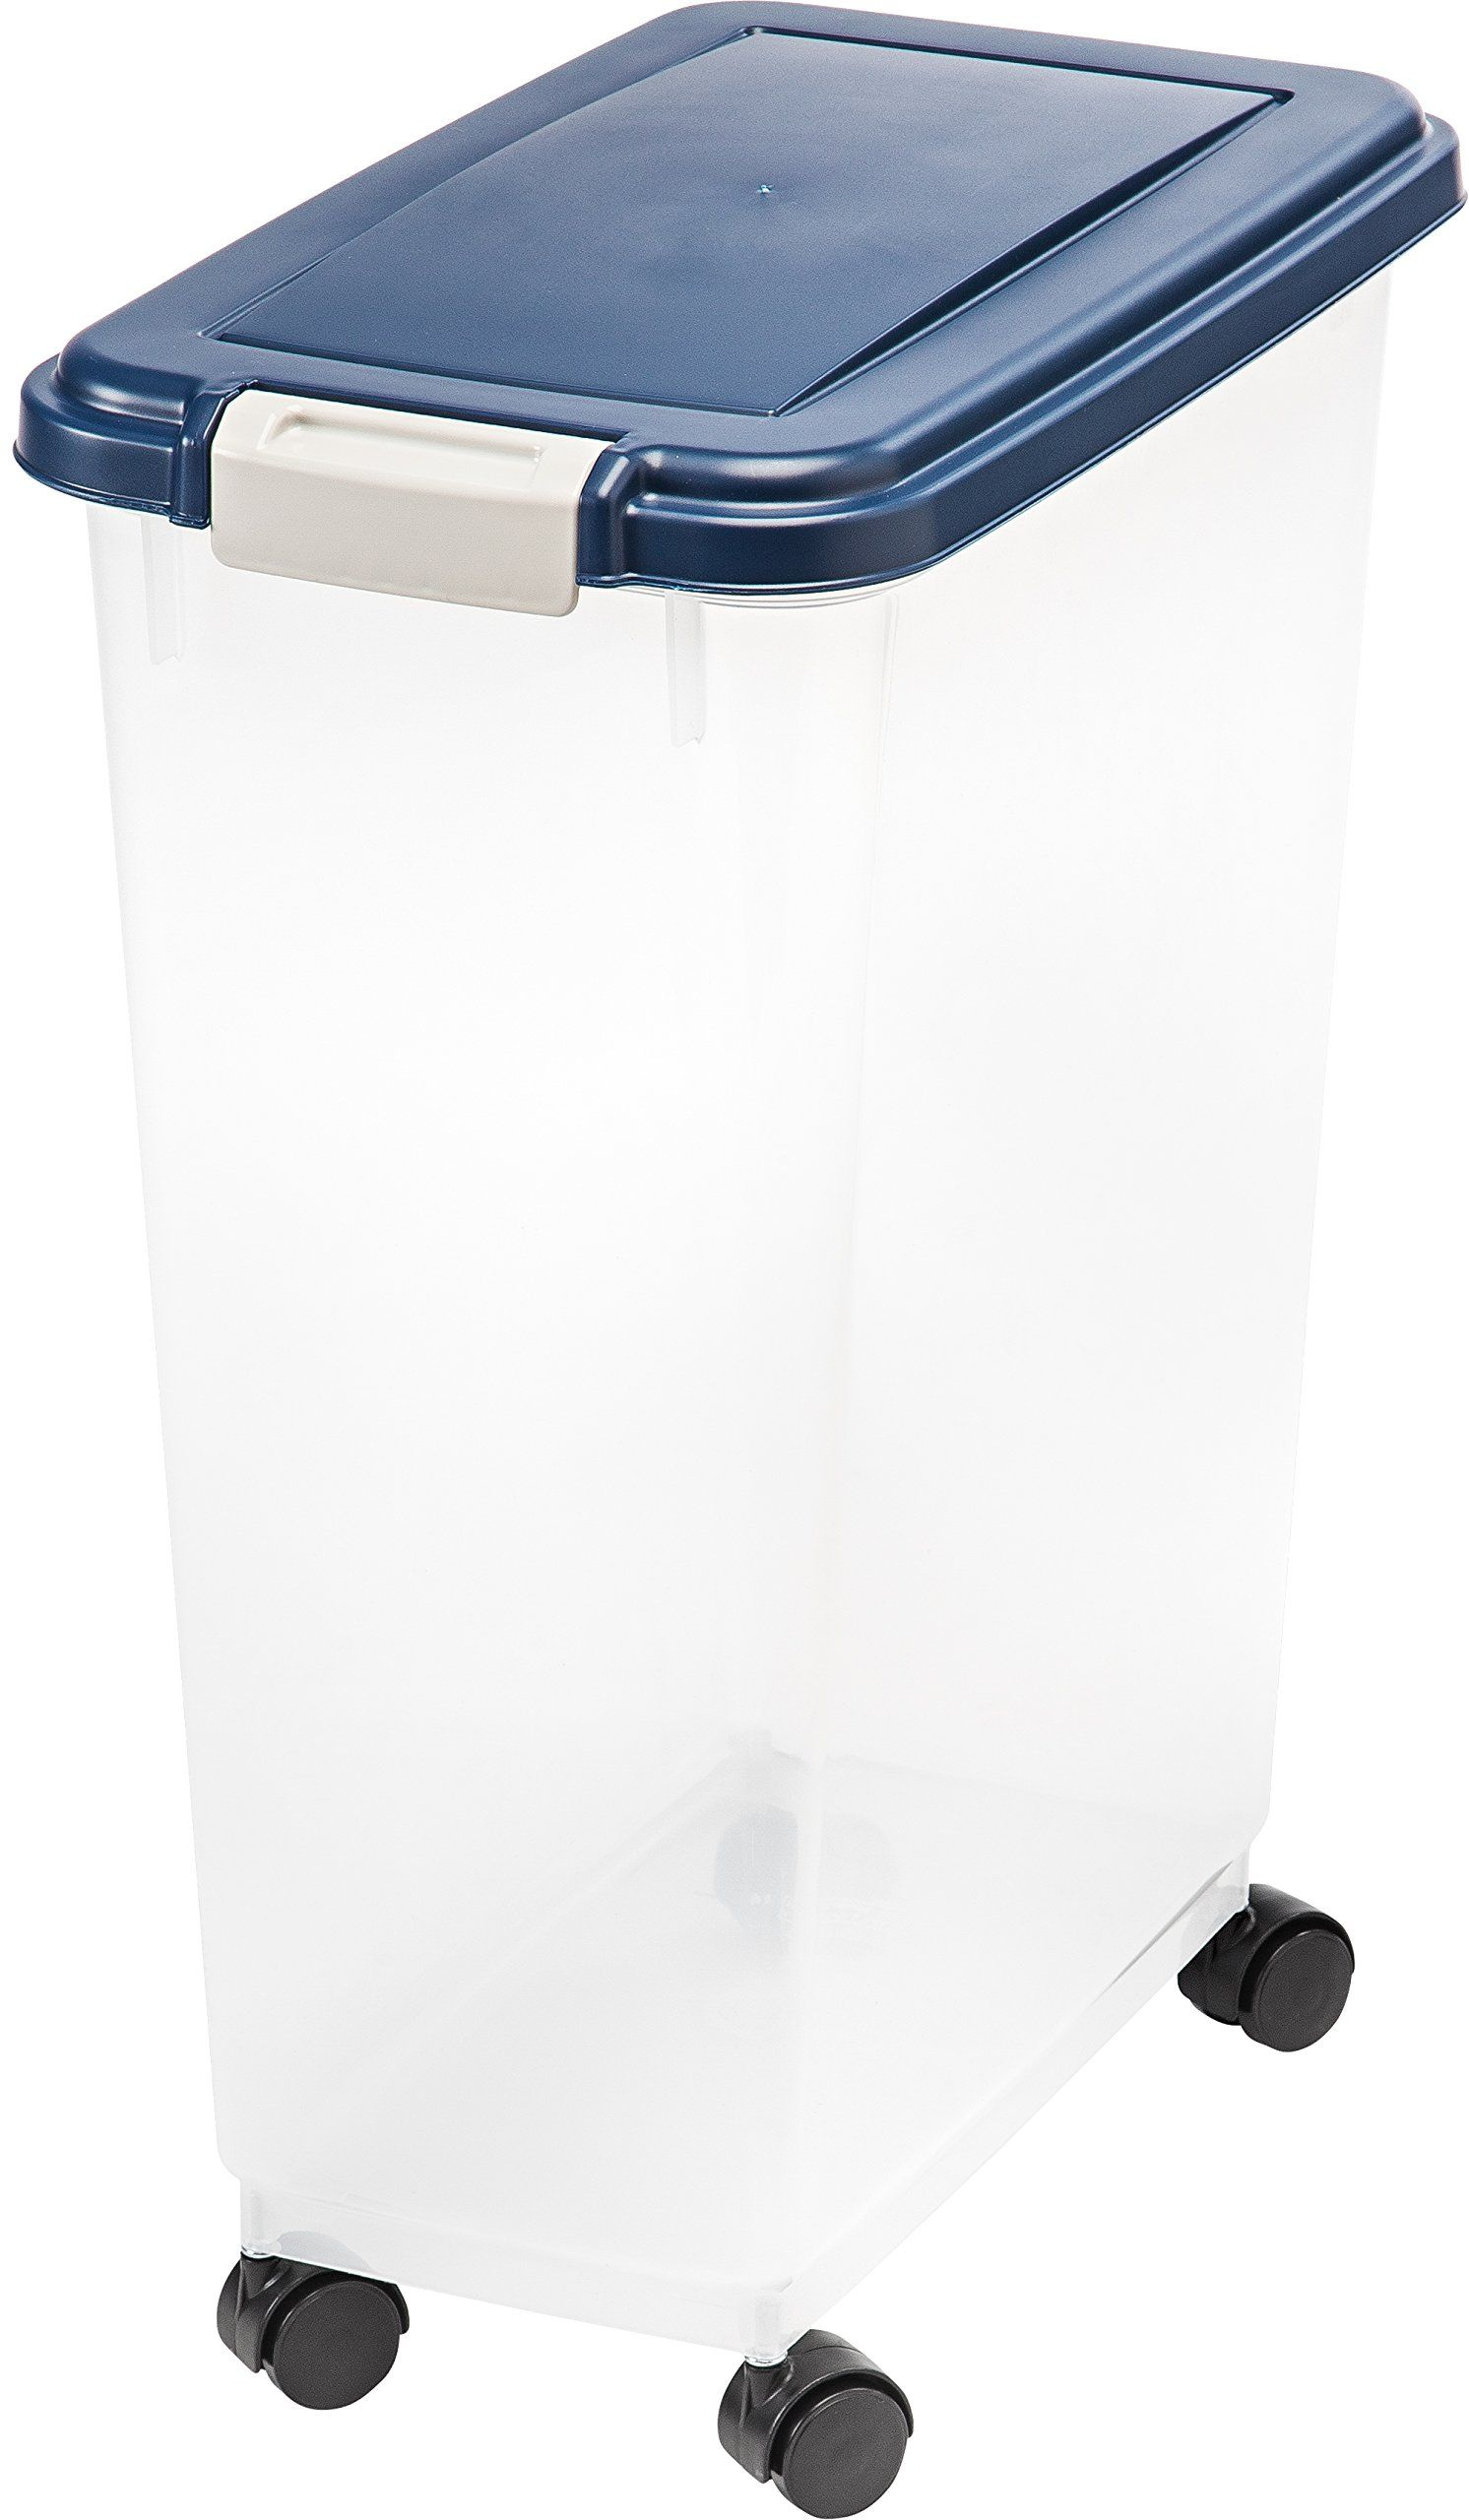 Iris Airtight Food Storage Container Want To Know More